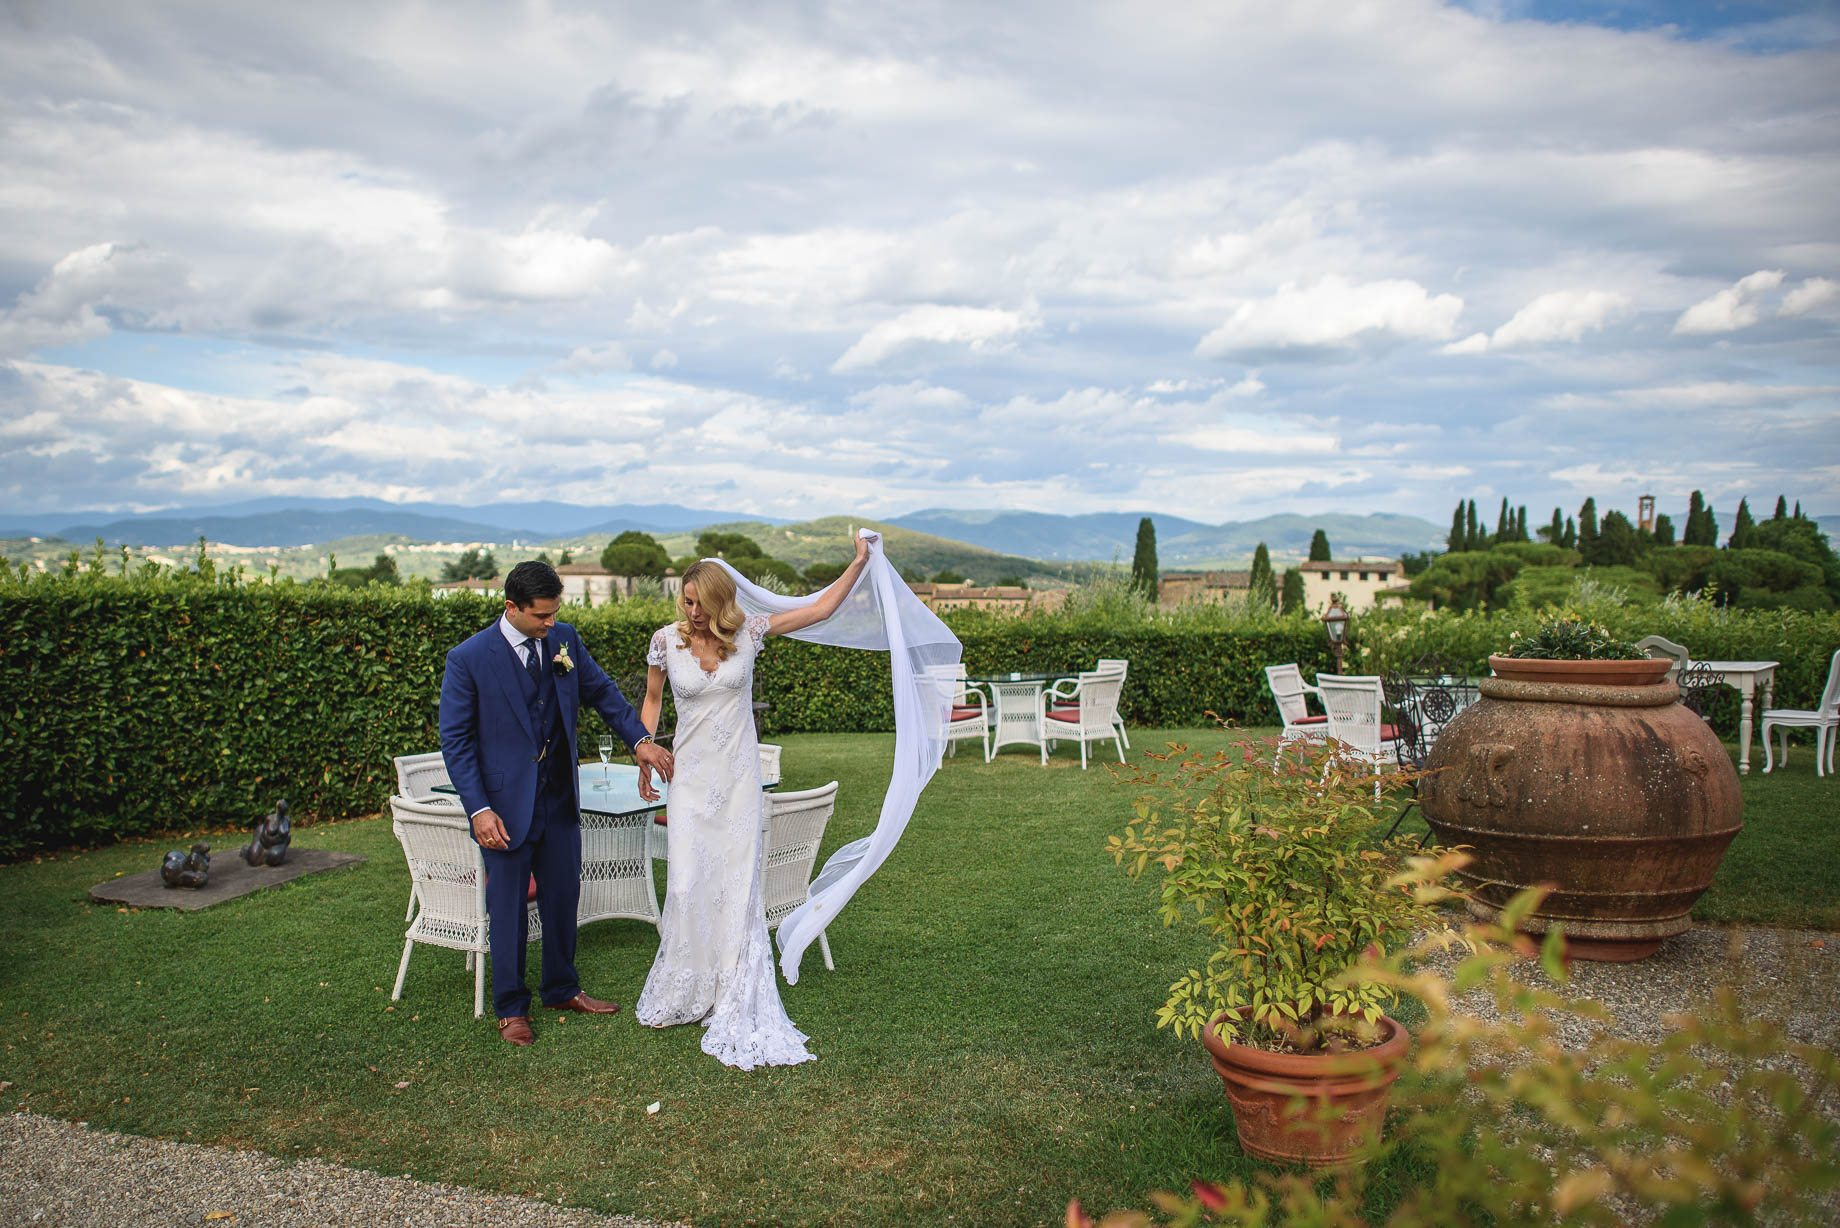 Tuscany wedding photography - Roisin and Moubin - Guy Collier Photography (116 of 251)